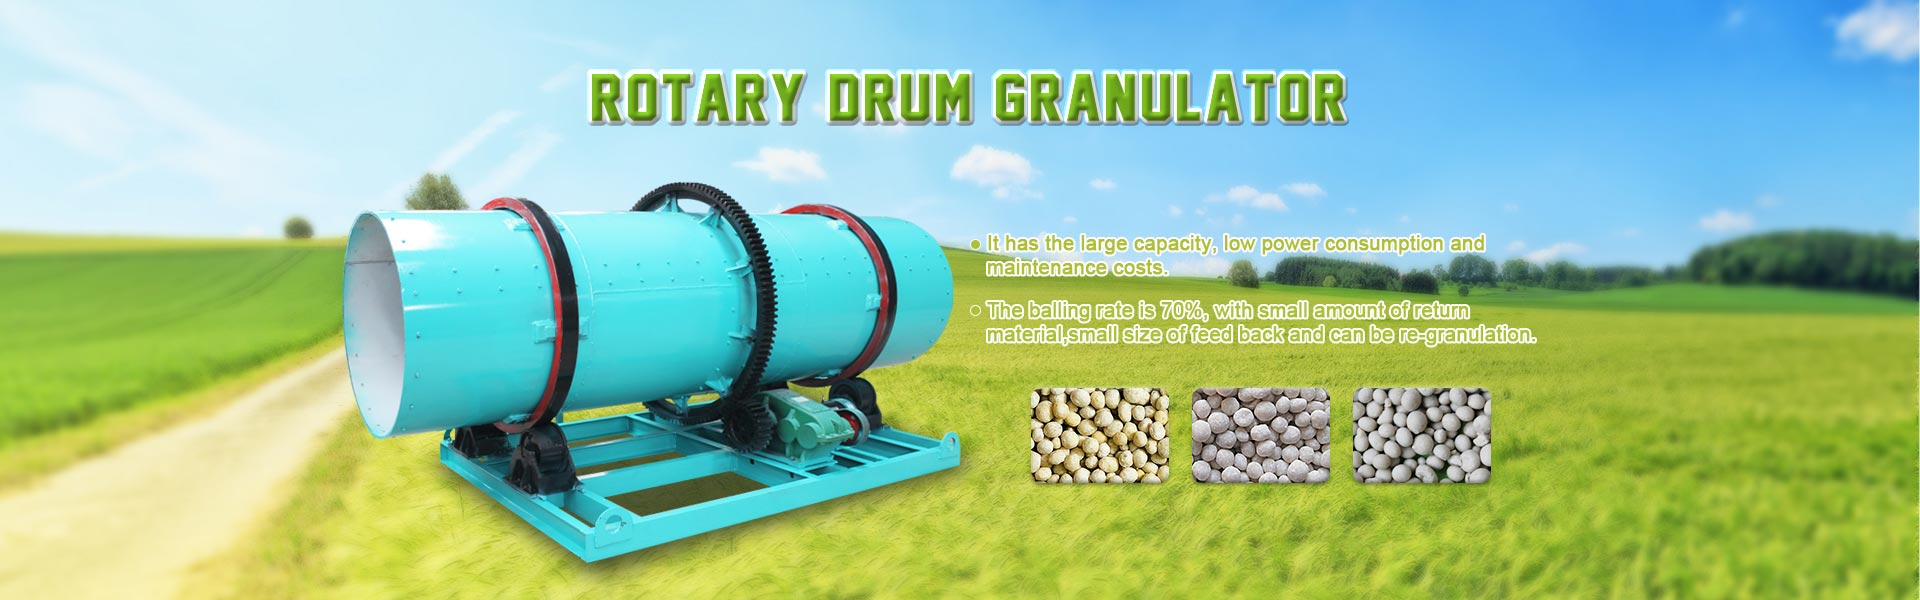 Rotary Drum Granulator